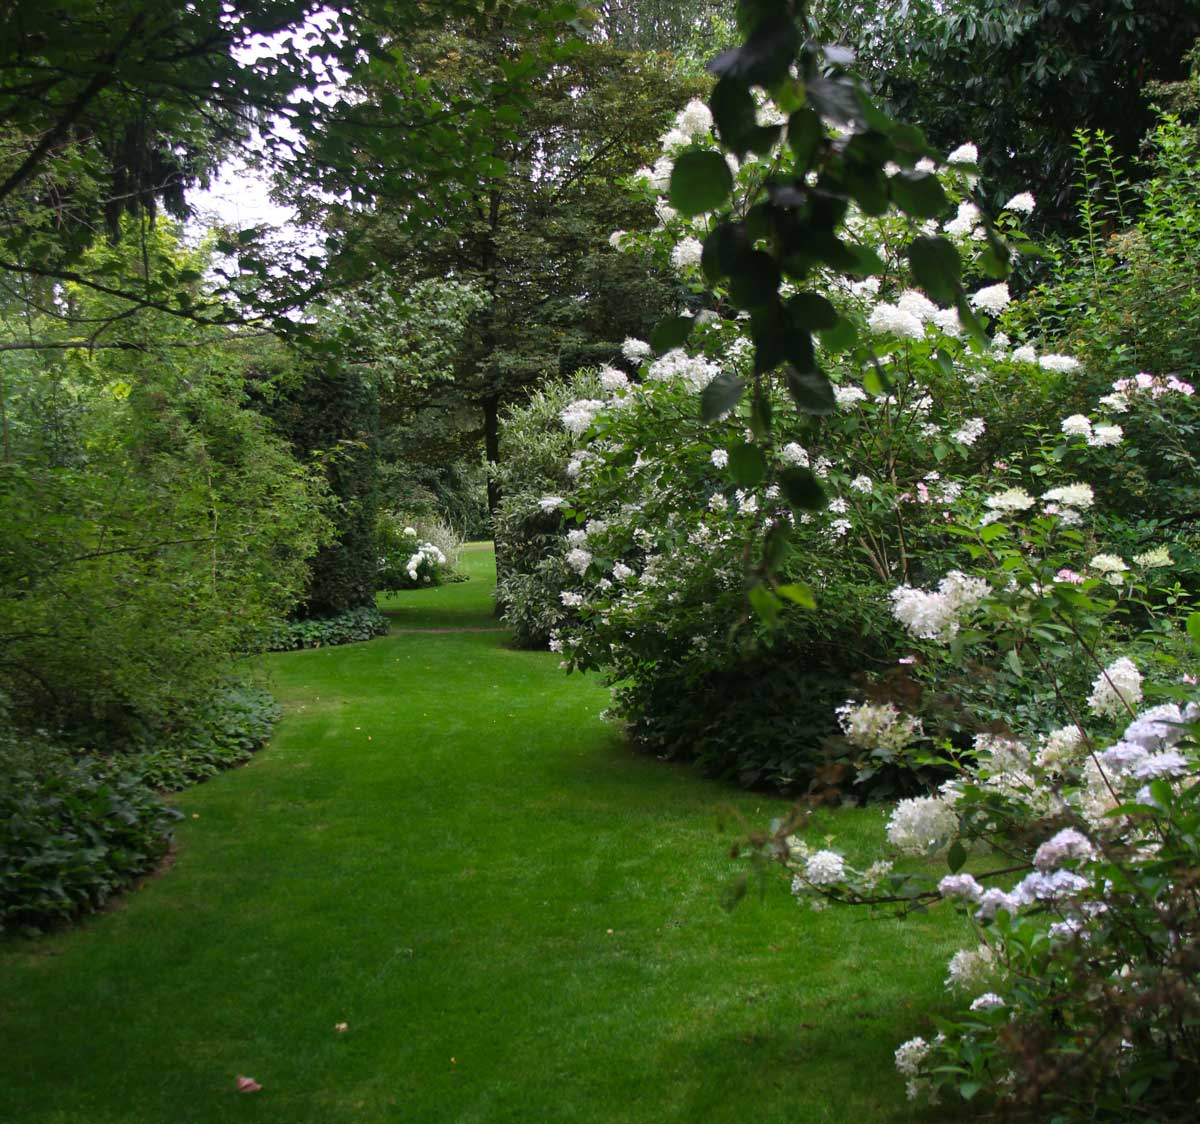 alley of an English garden with a supple and elegant layout